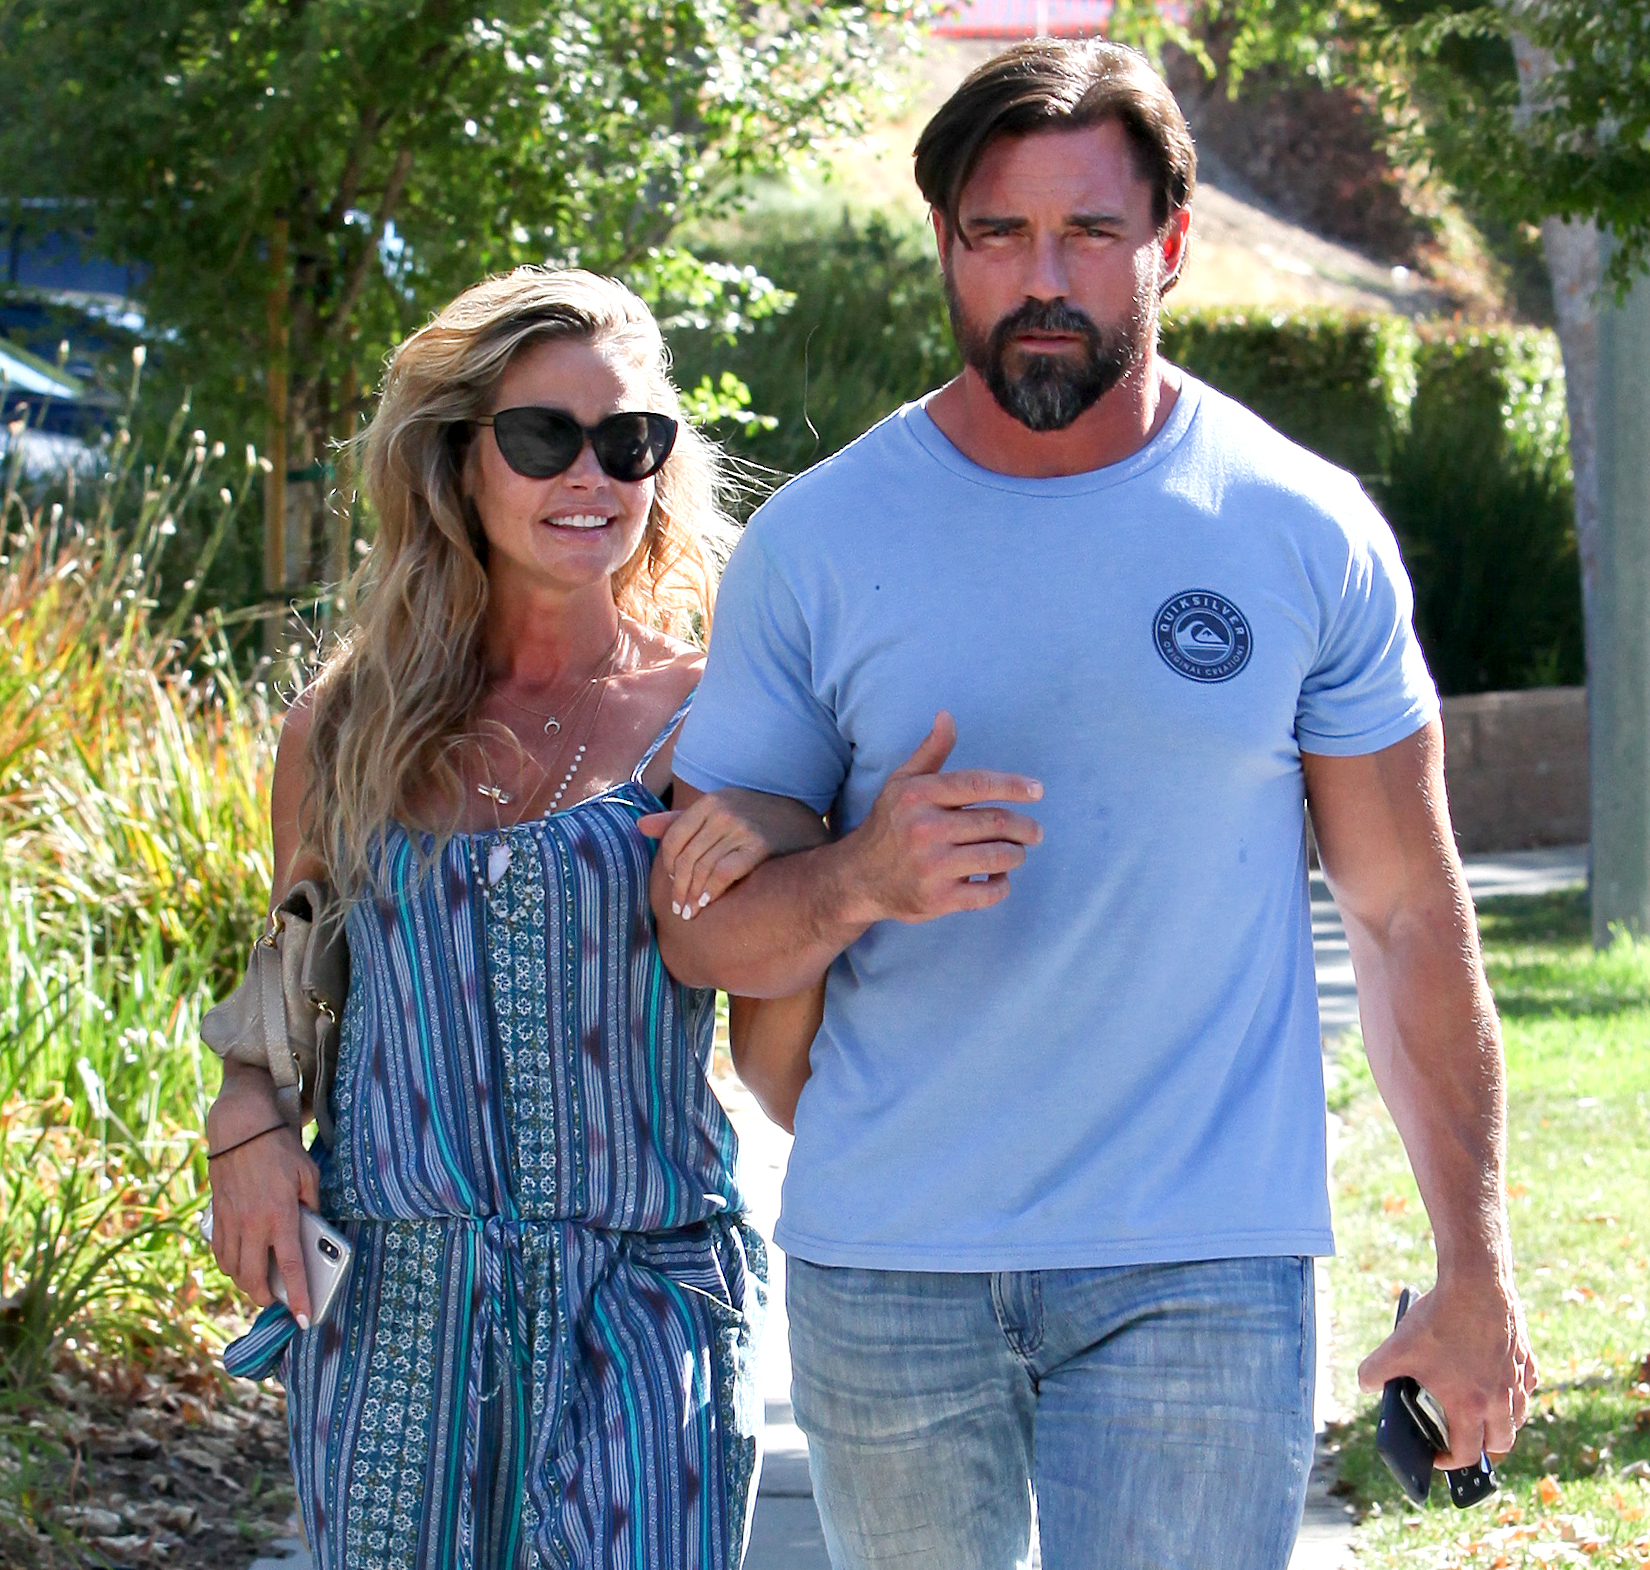 """Denise Richards Quotes About Husband Aaron Phypers - When Phypers objected to Denise's comments about the size of his manhood, his wife theorized that he """"secretly"""" enjoyed it. """"What guy wouldn't want their woman to talk about the size of their c–k?"""" she said during a May 15 aftershow."""